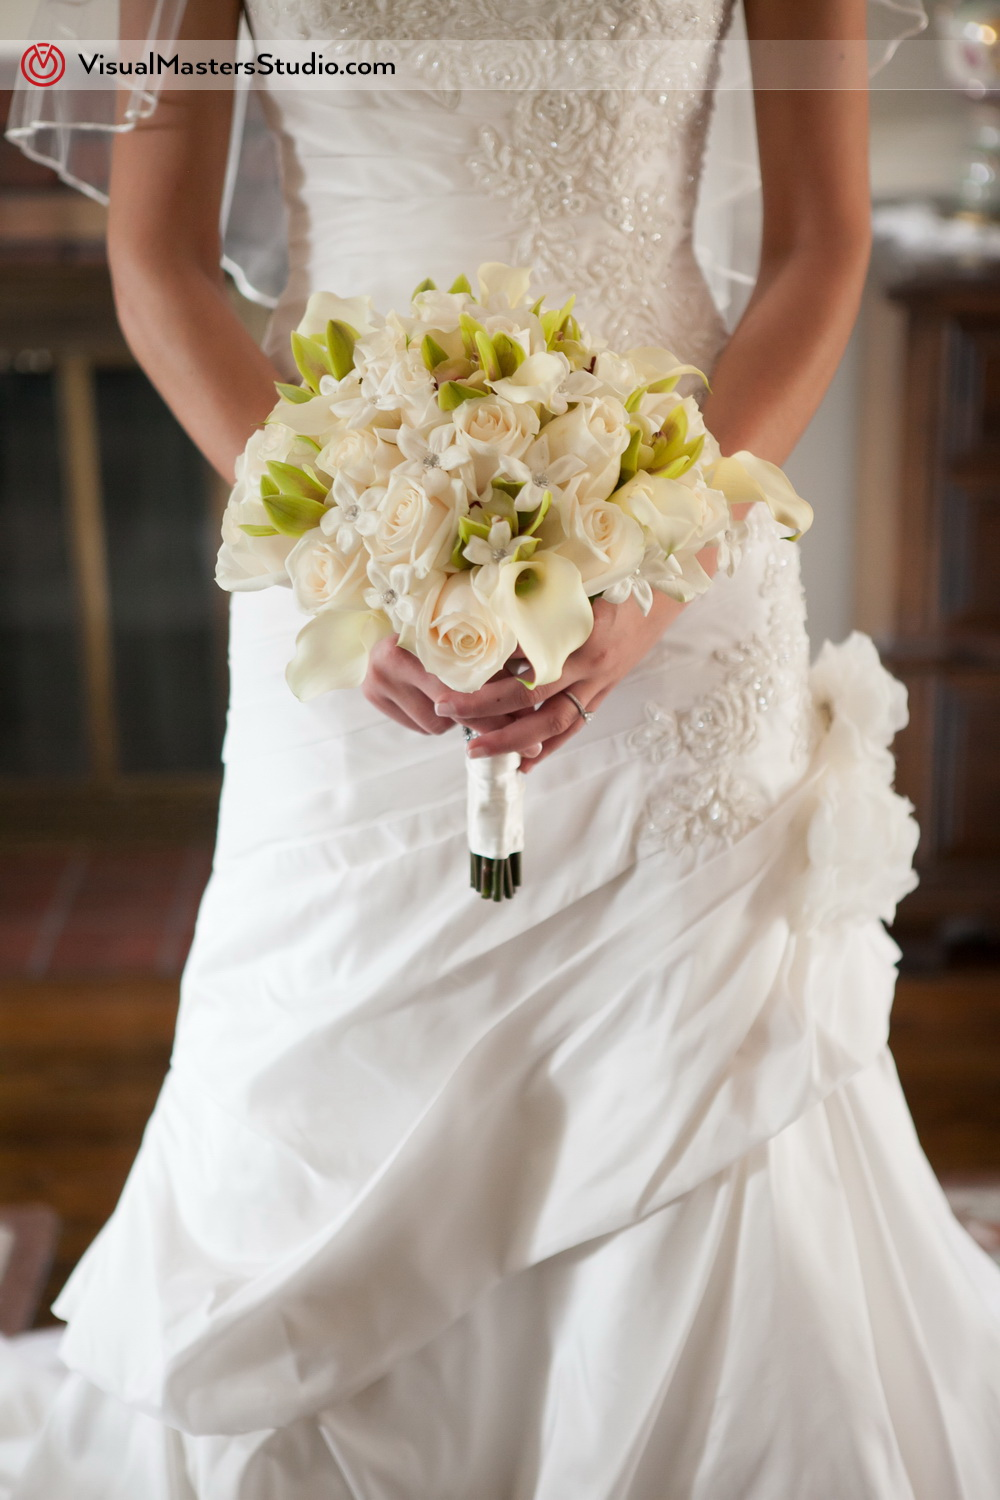 Wedding Flowers by Visual Masters